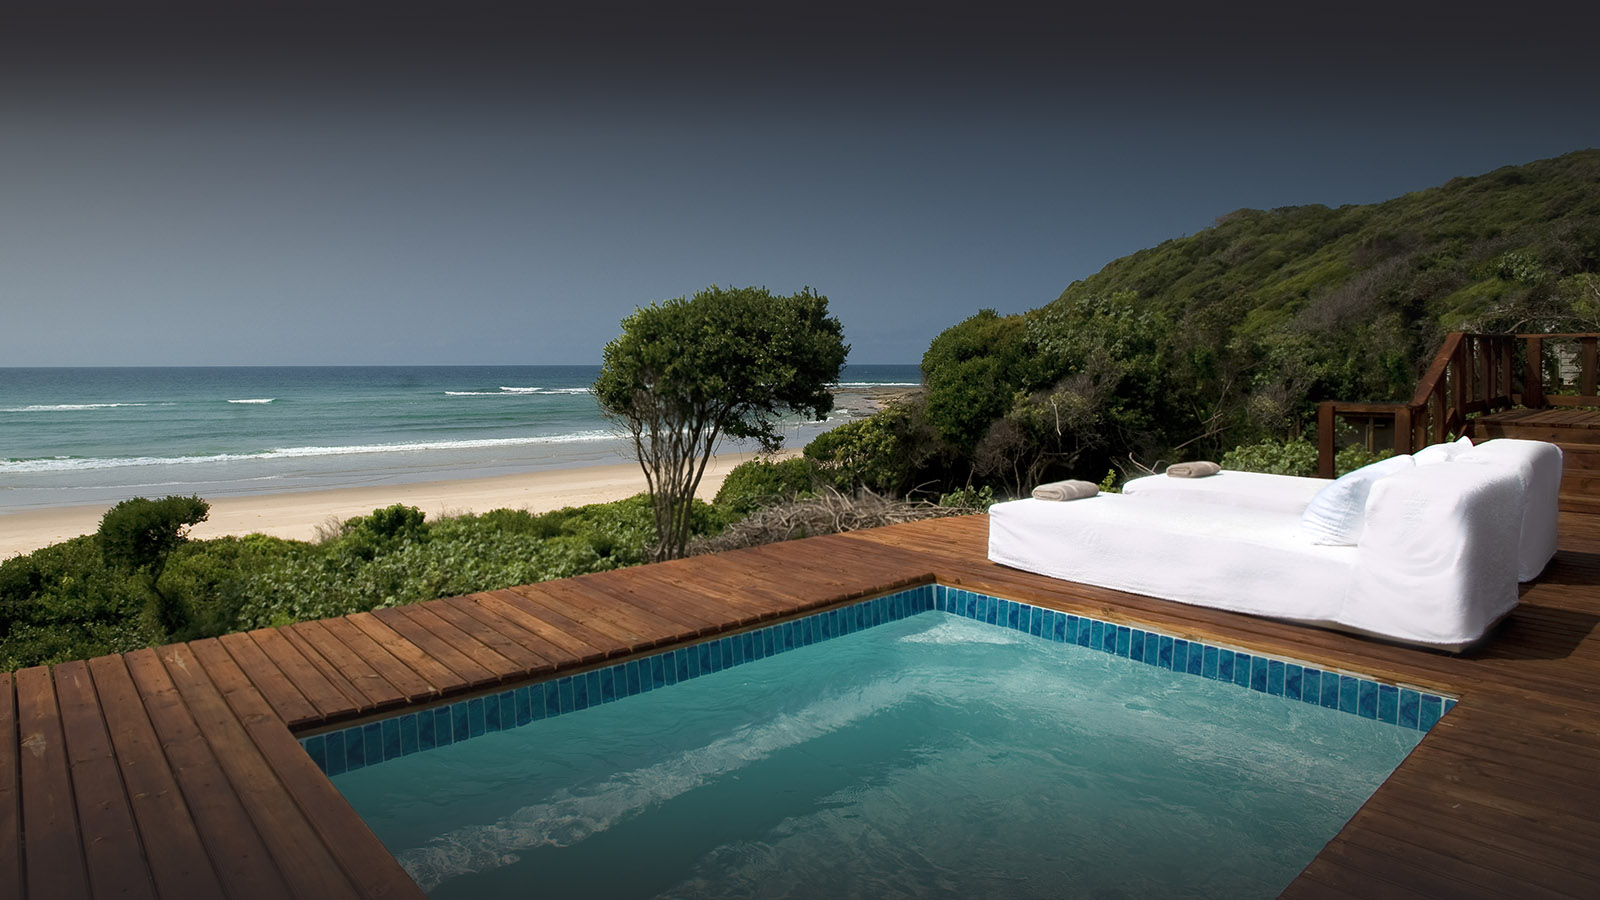 white-pearl resort mozambique-lodges-zitundo-zambia-in-style-private-beach-exclusive-location-plunge-pool-deck-views